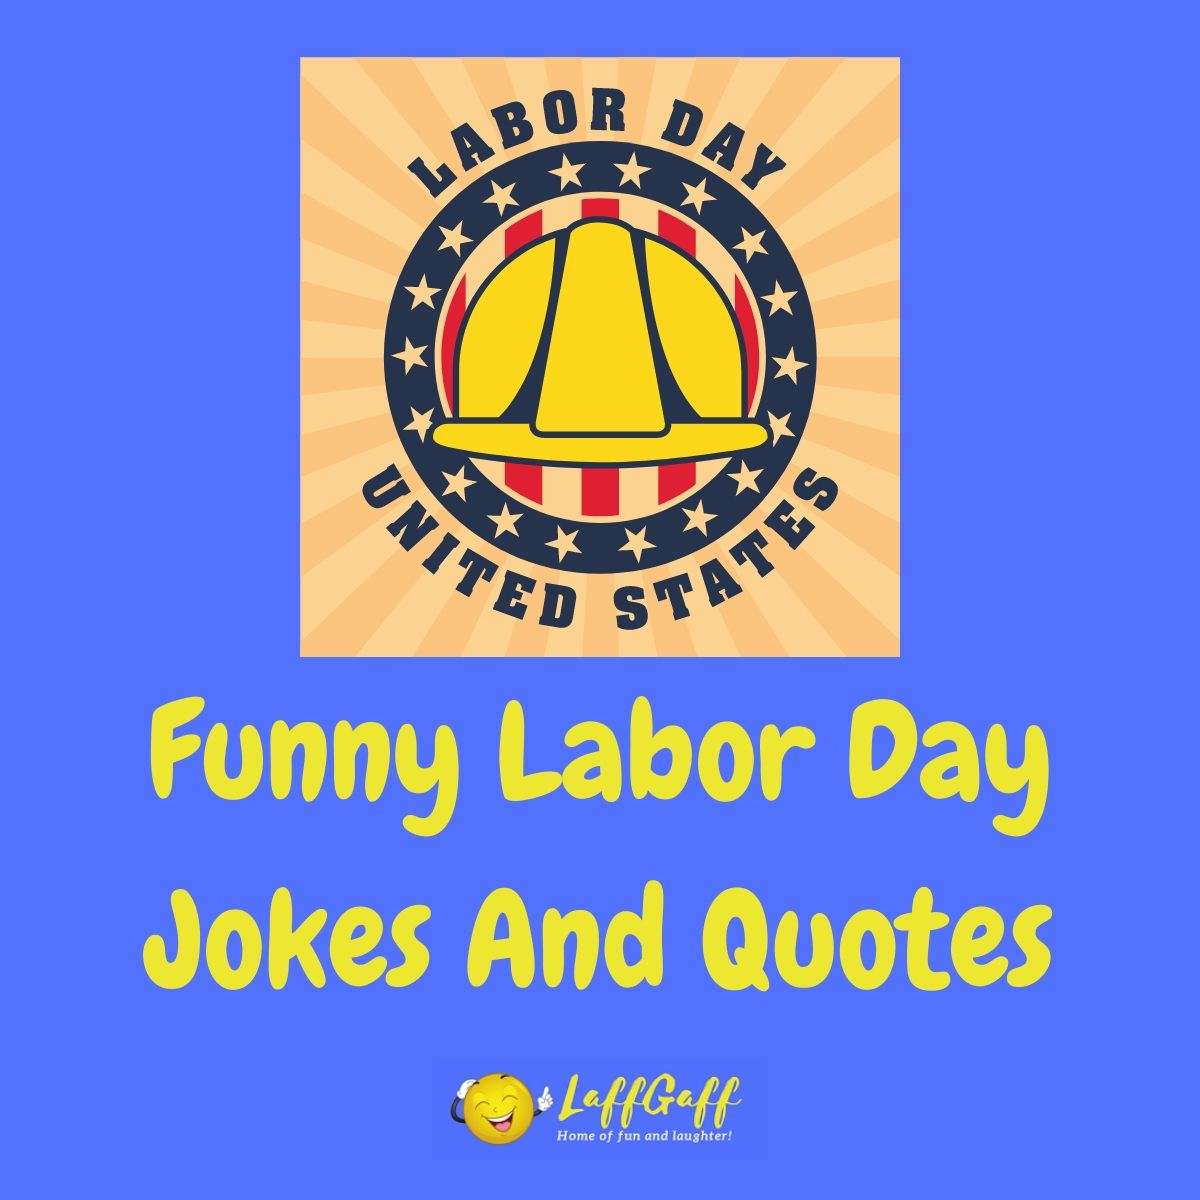 Featured image for a page of funny Labor Day jokes and quotes.